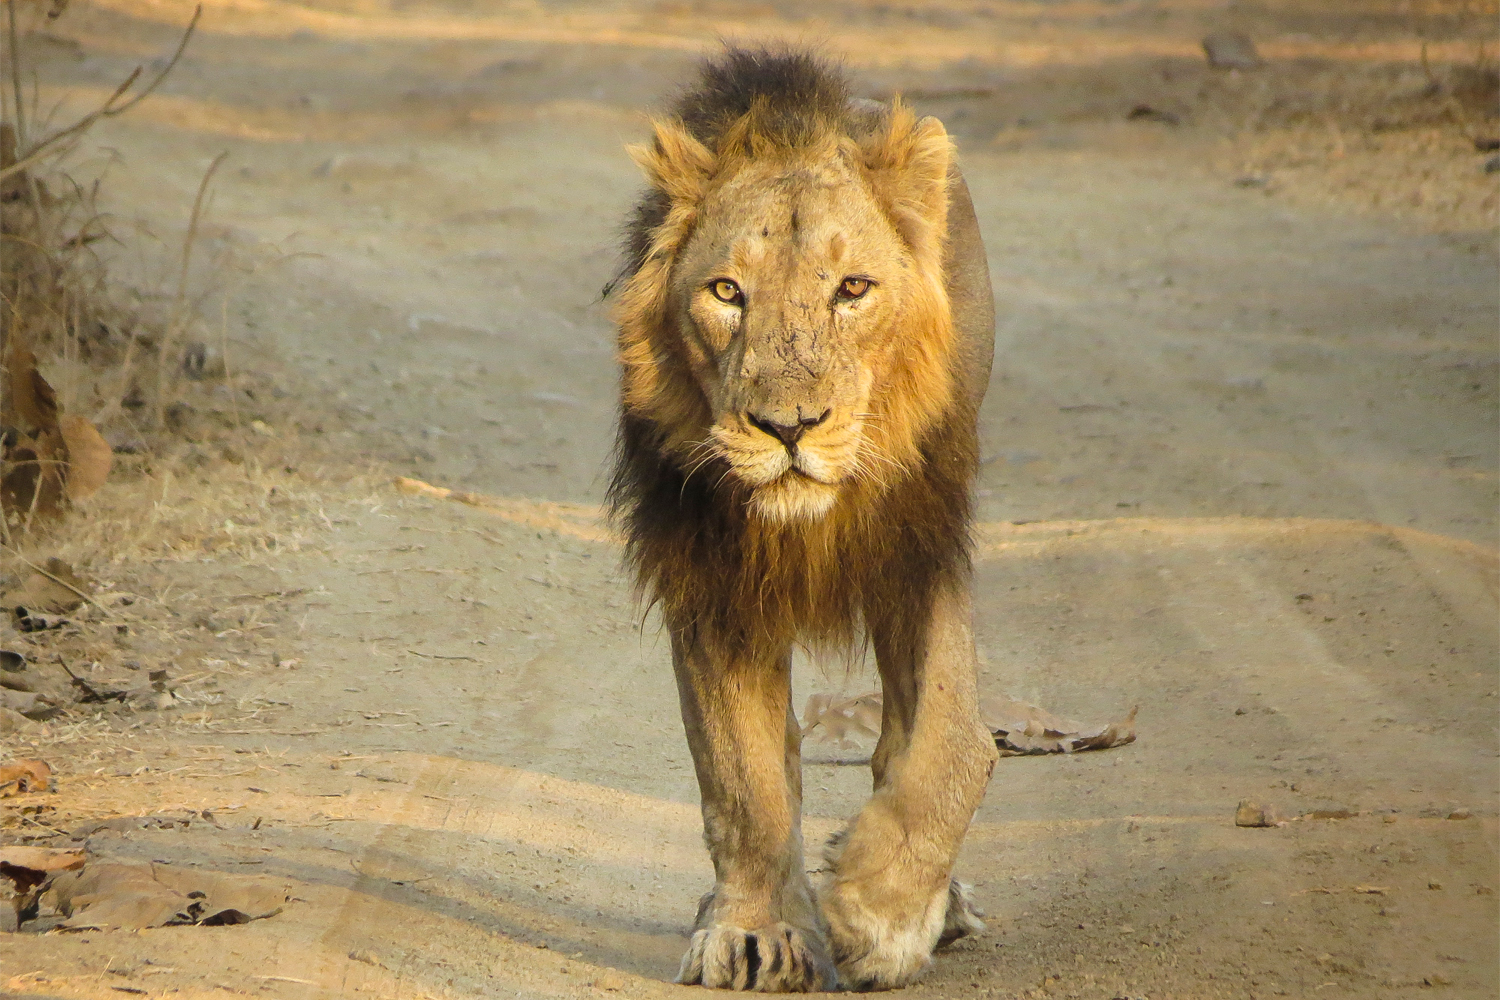 The Lions of Gir